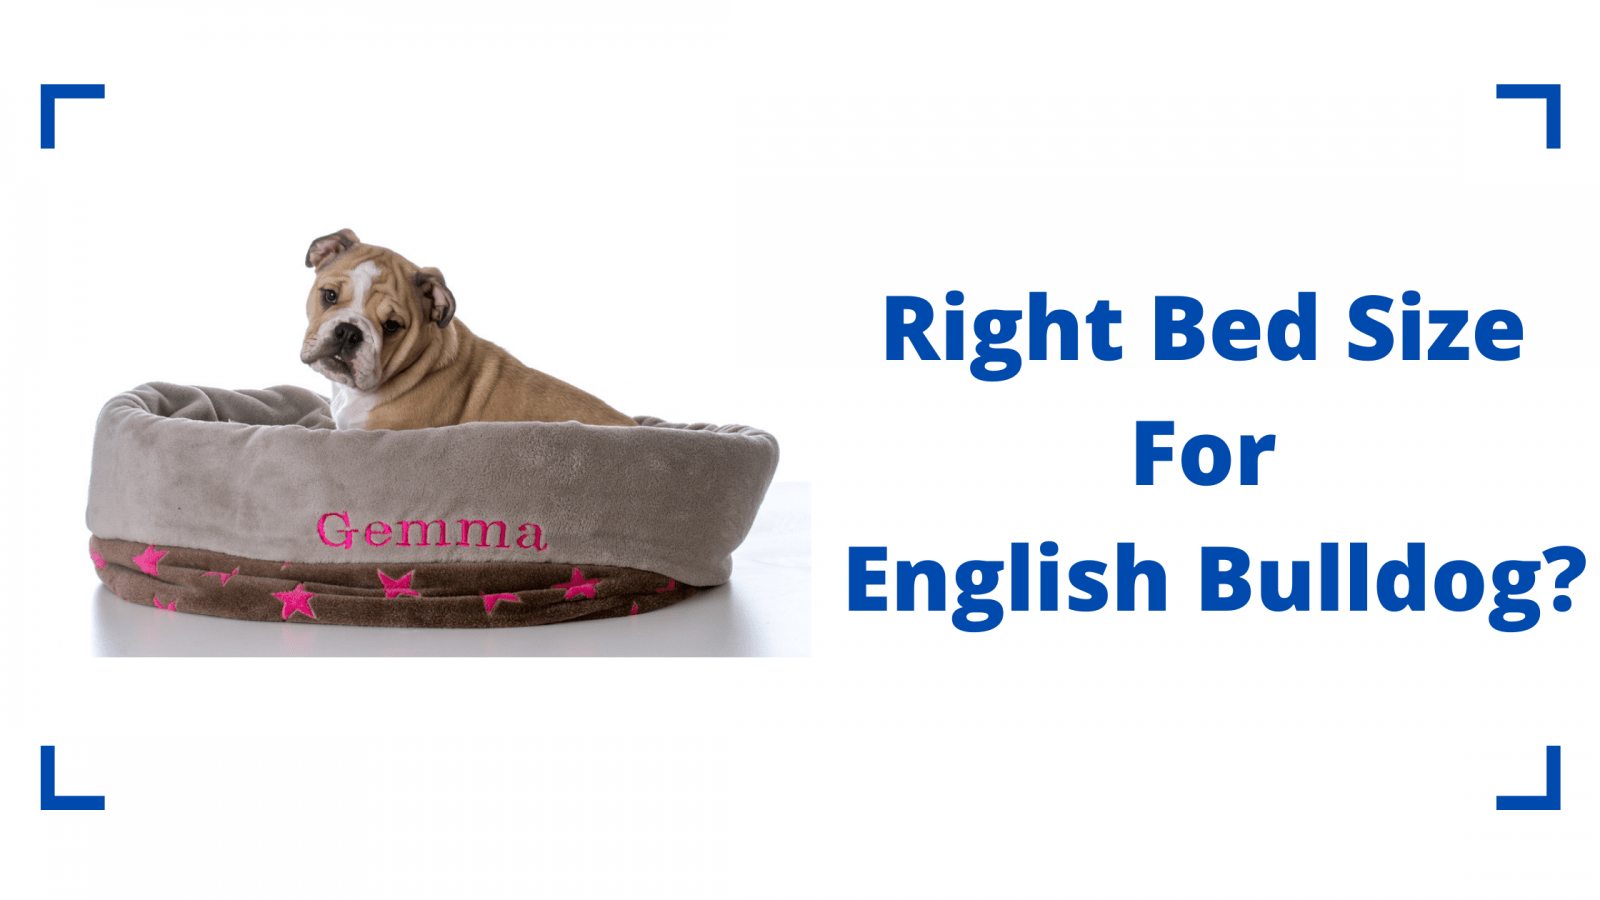 Right Bed Size For English Bulldog